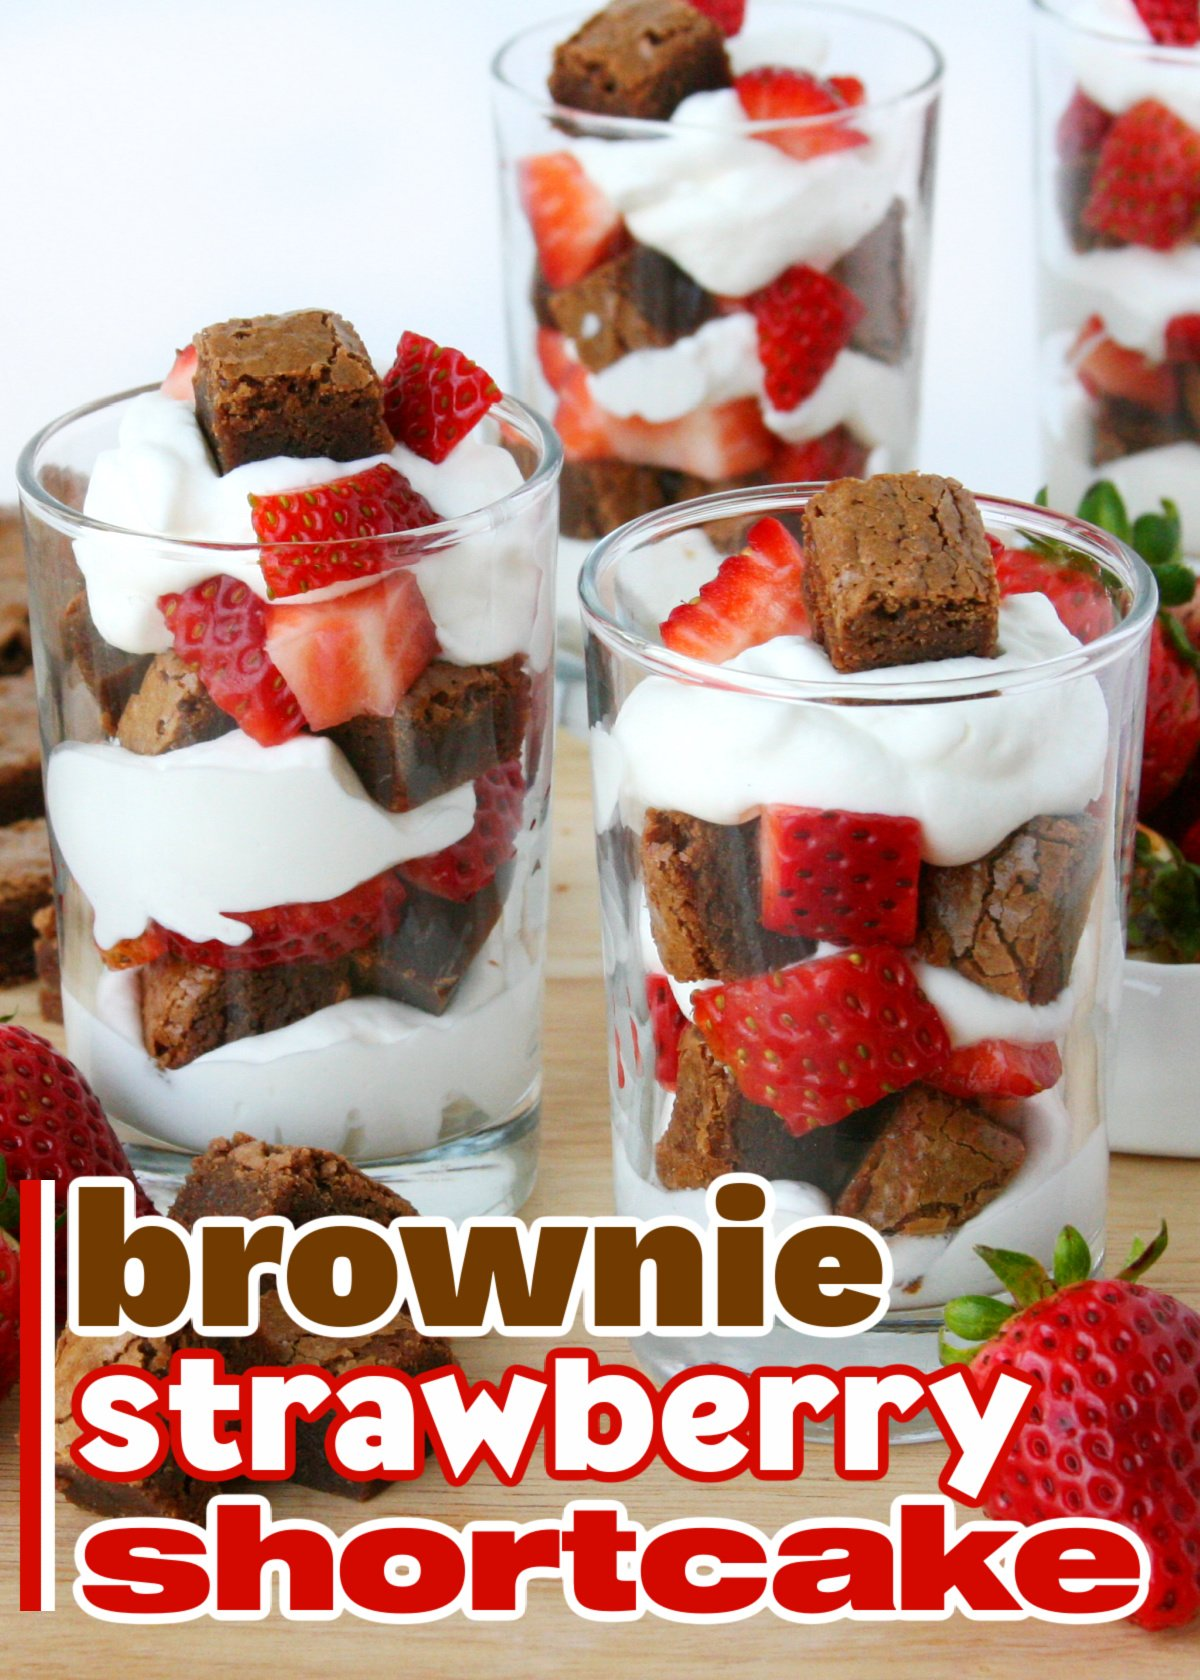 three small glasses with brownies chunks, whipped cream and strawberries layered in them. Title overlay at bottom of image.